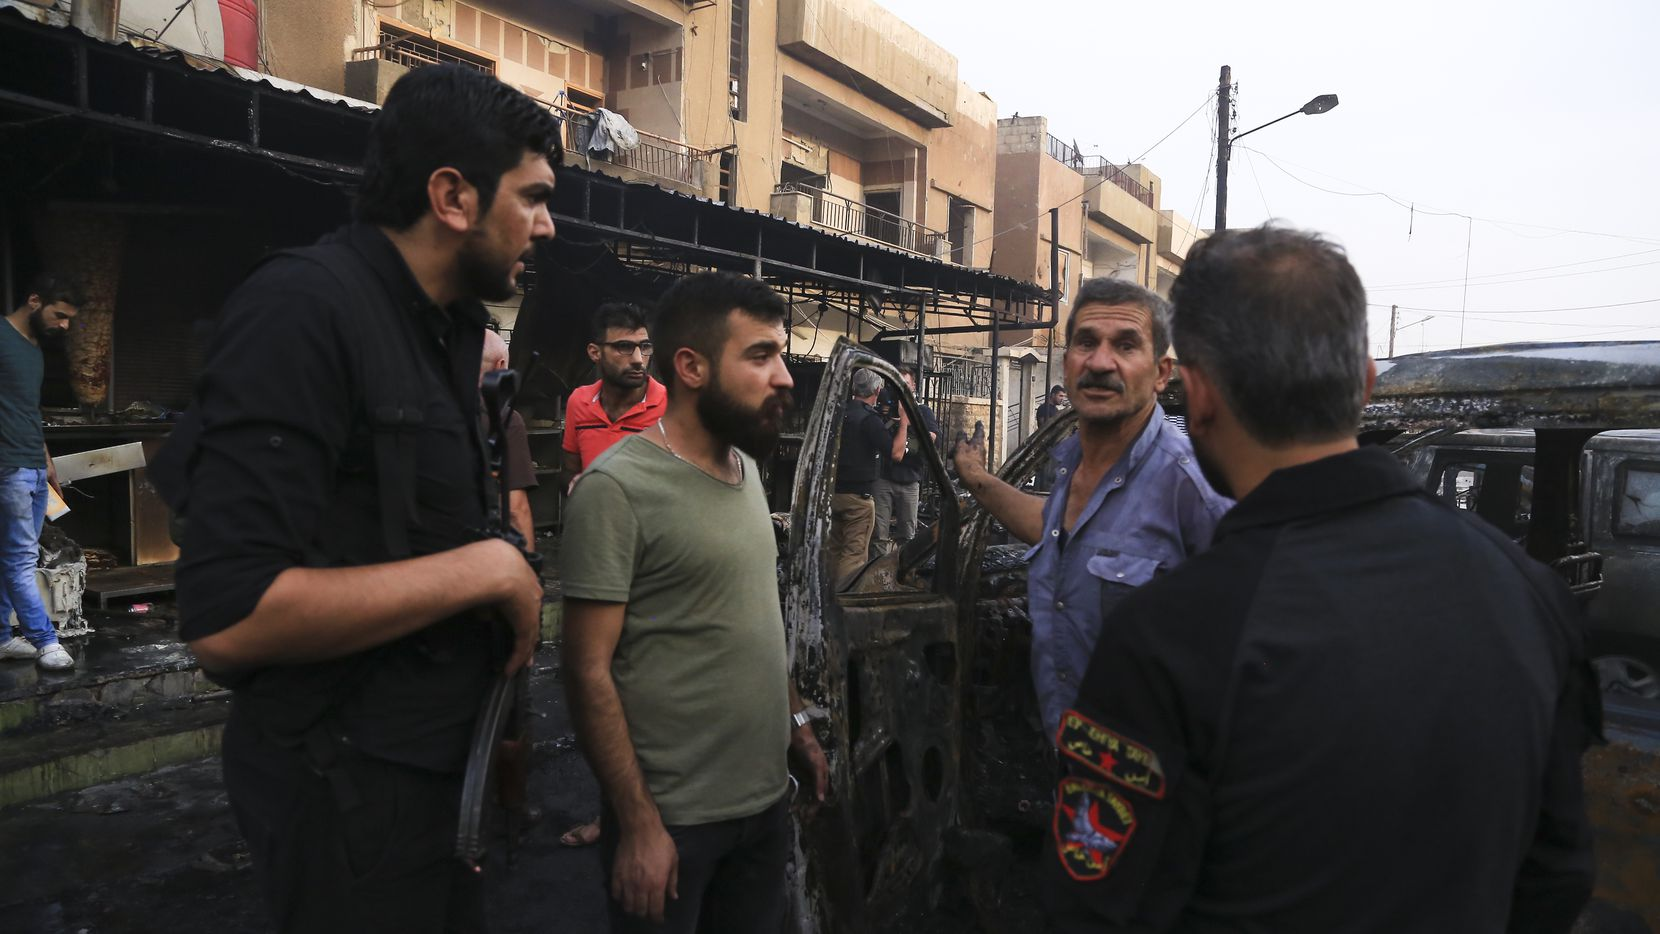 People gather after a car bomb exploded in the town of Qamishli, Syria, Friday, Oct. 11, 2019. Turkish forces faced intense resistance by U.S.-allied Syrian Kurdish fighters on the third day of Ankara's offensive, as casualties mounted, international criticism of the campaign intensified and an estimated 100,000 people fled the violence. AP Photo/Baderkhan Ahmad